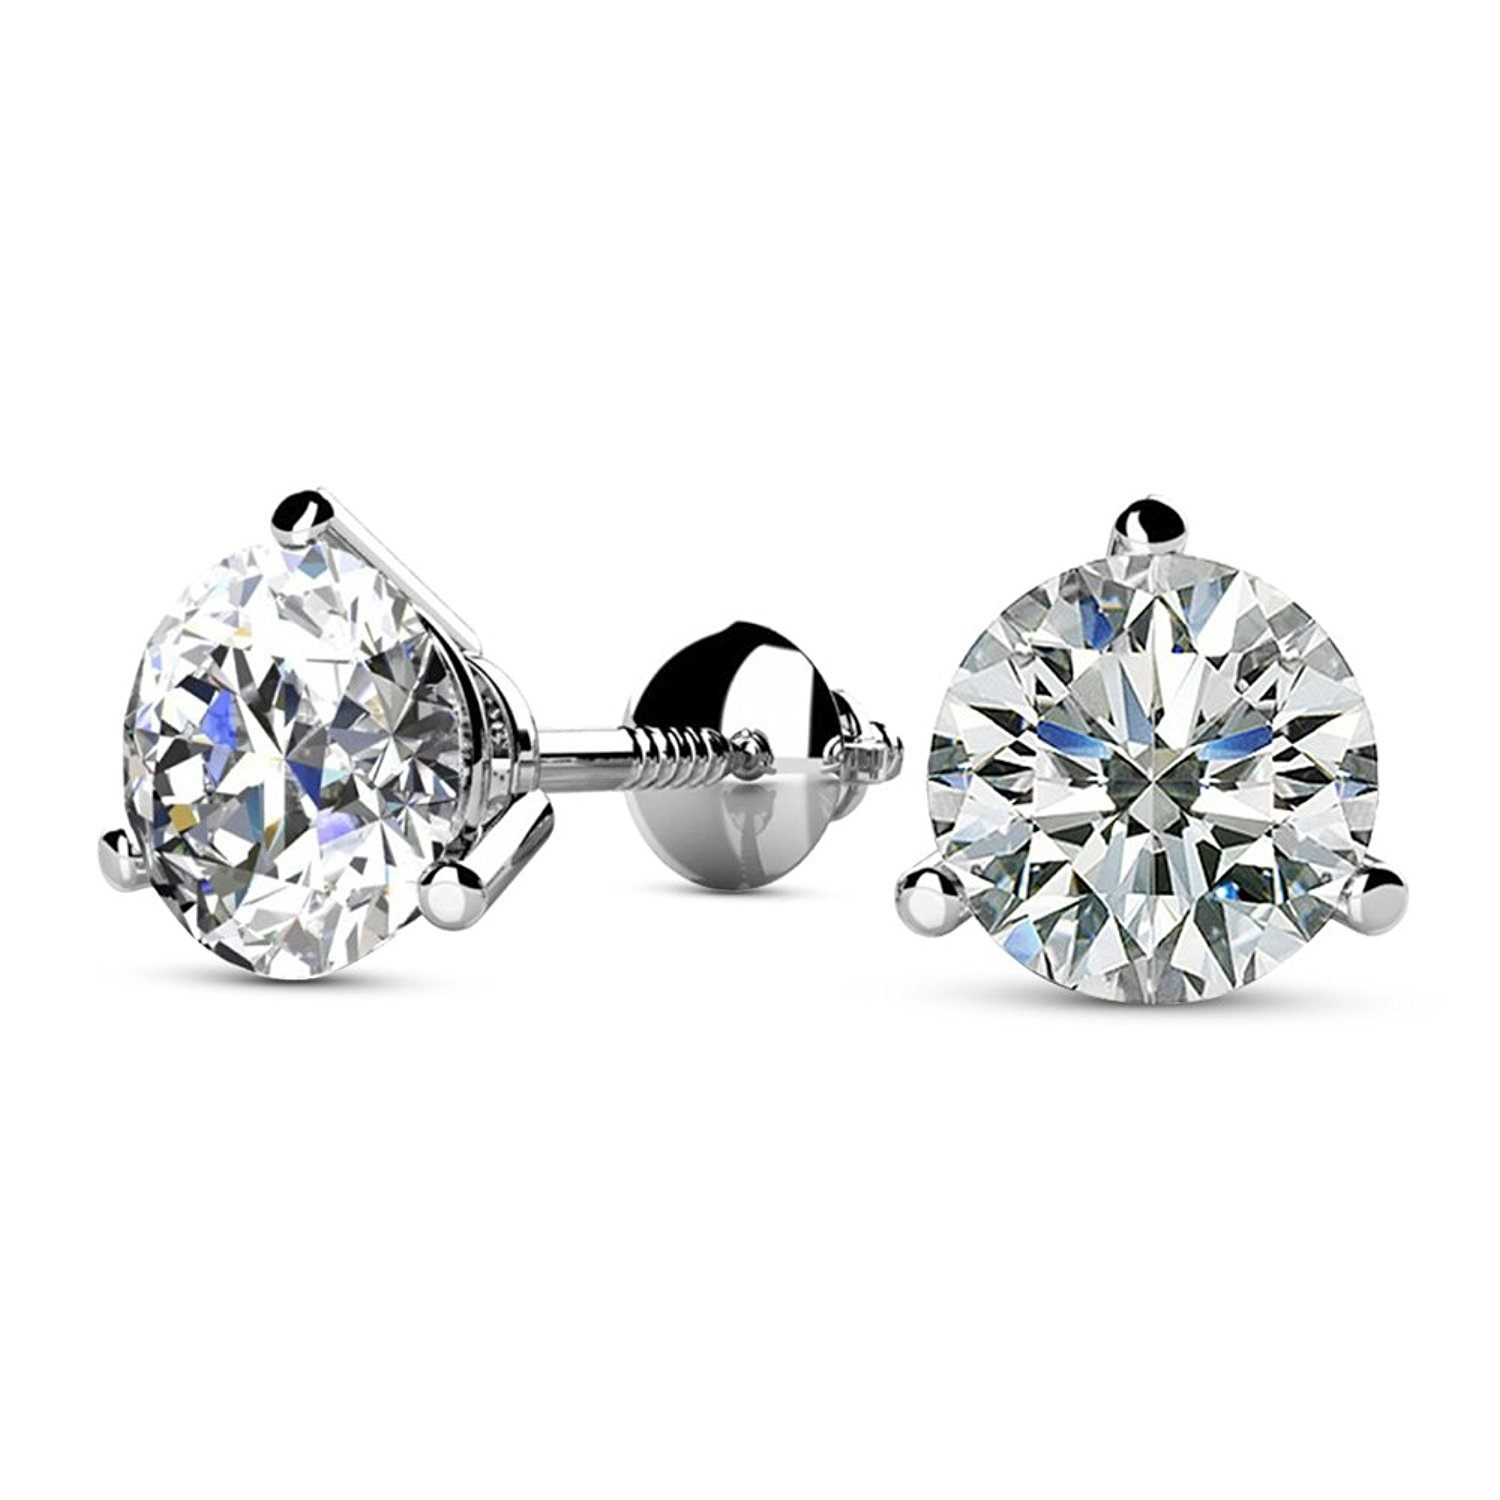 c03d3a2e9 Get Quotations · 3/4 Carat Solitaire Diamond Stud Earrings Round Brilliant  Shape 3 Prong Screw Back (